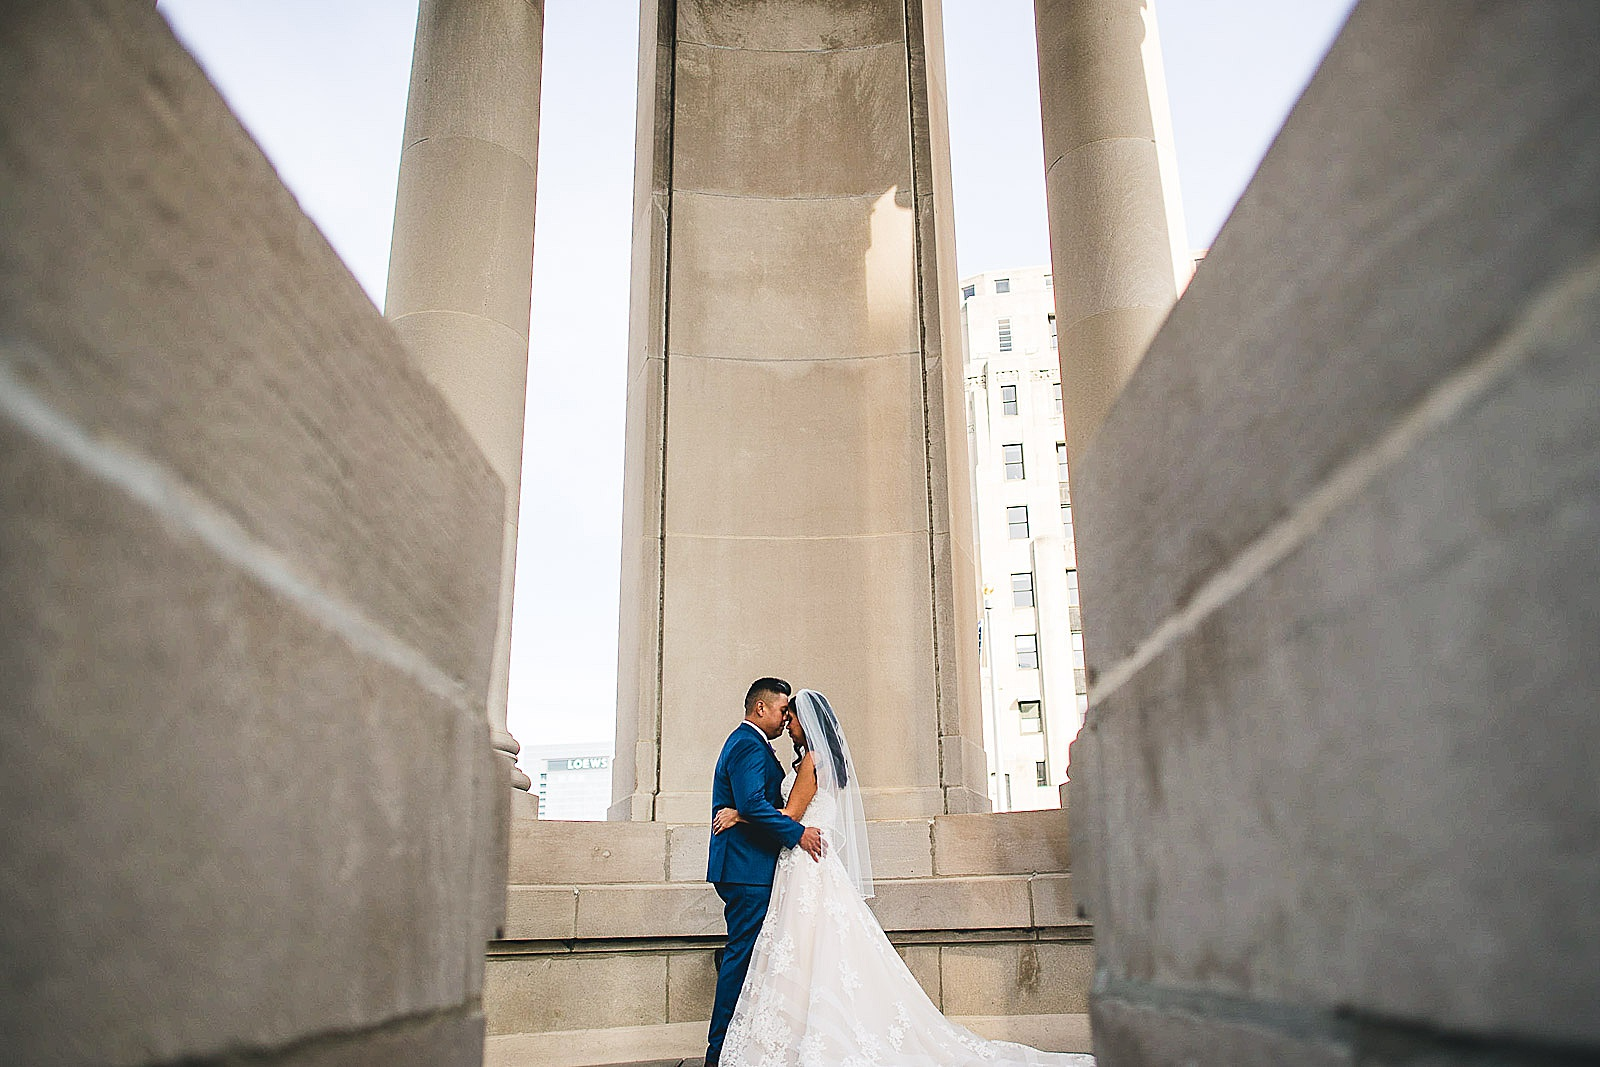 19 chicago wedding photos at london house hotel - LondonHouse Wedding Photos // Mari + Kevin